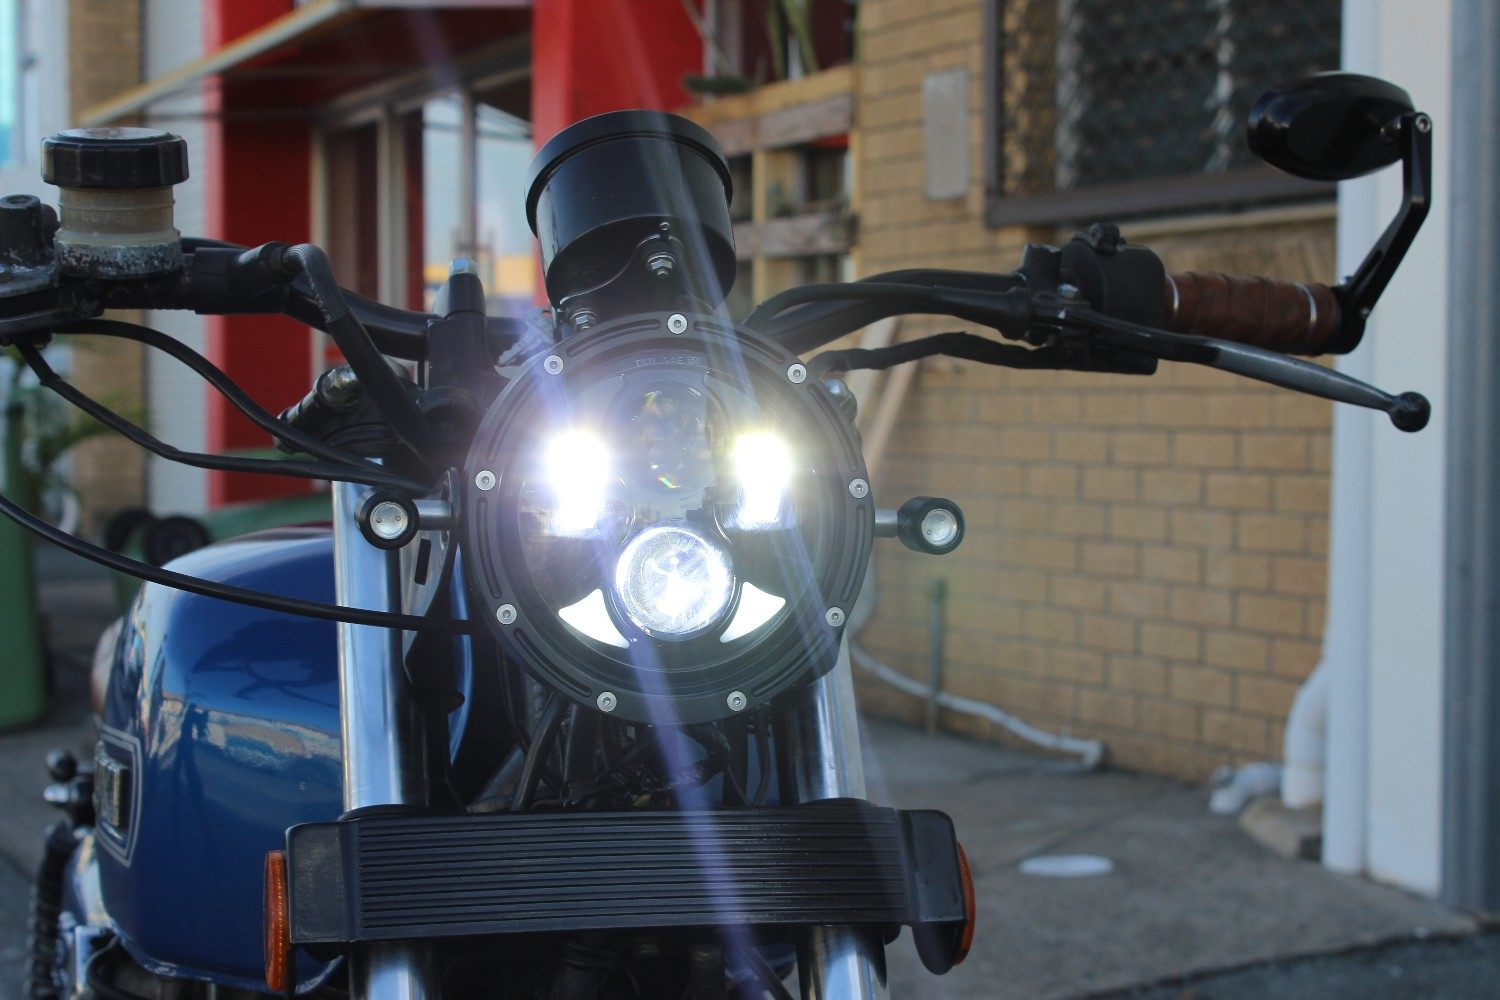 LED headlight cafe racer australia